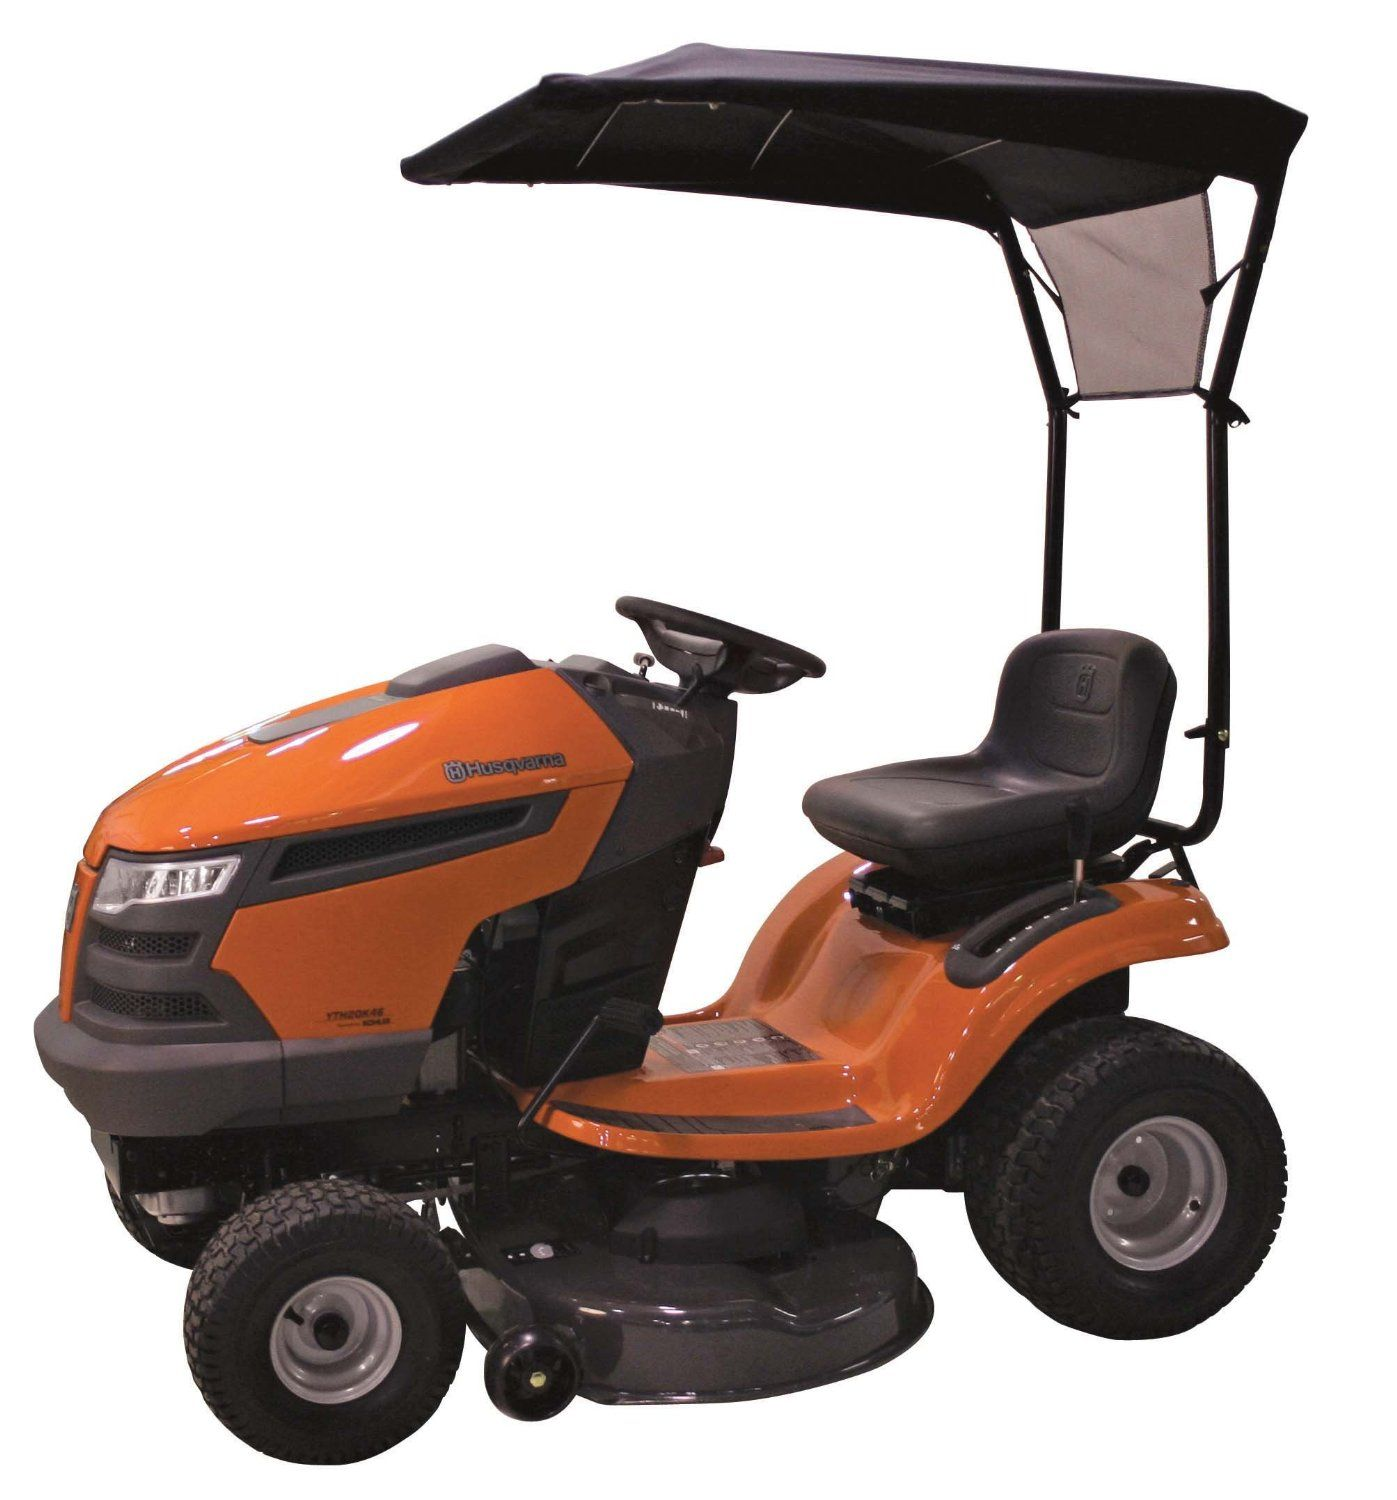 Electric Riding Lawn Mower Conversion Yard Lanscaping